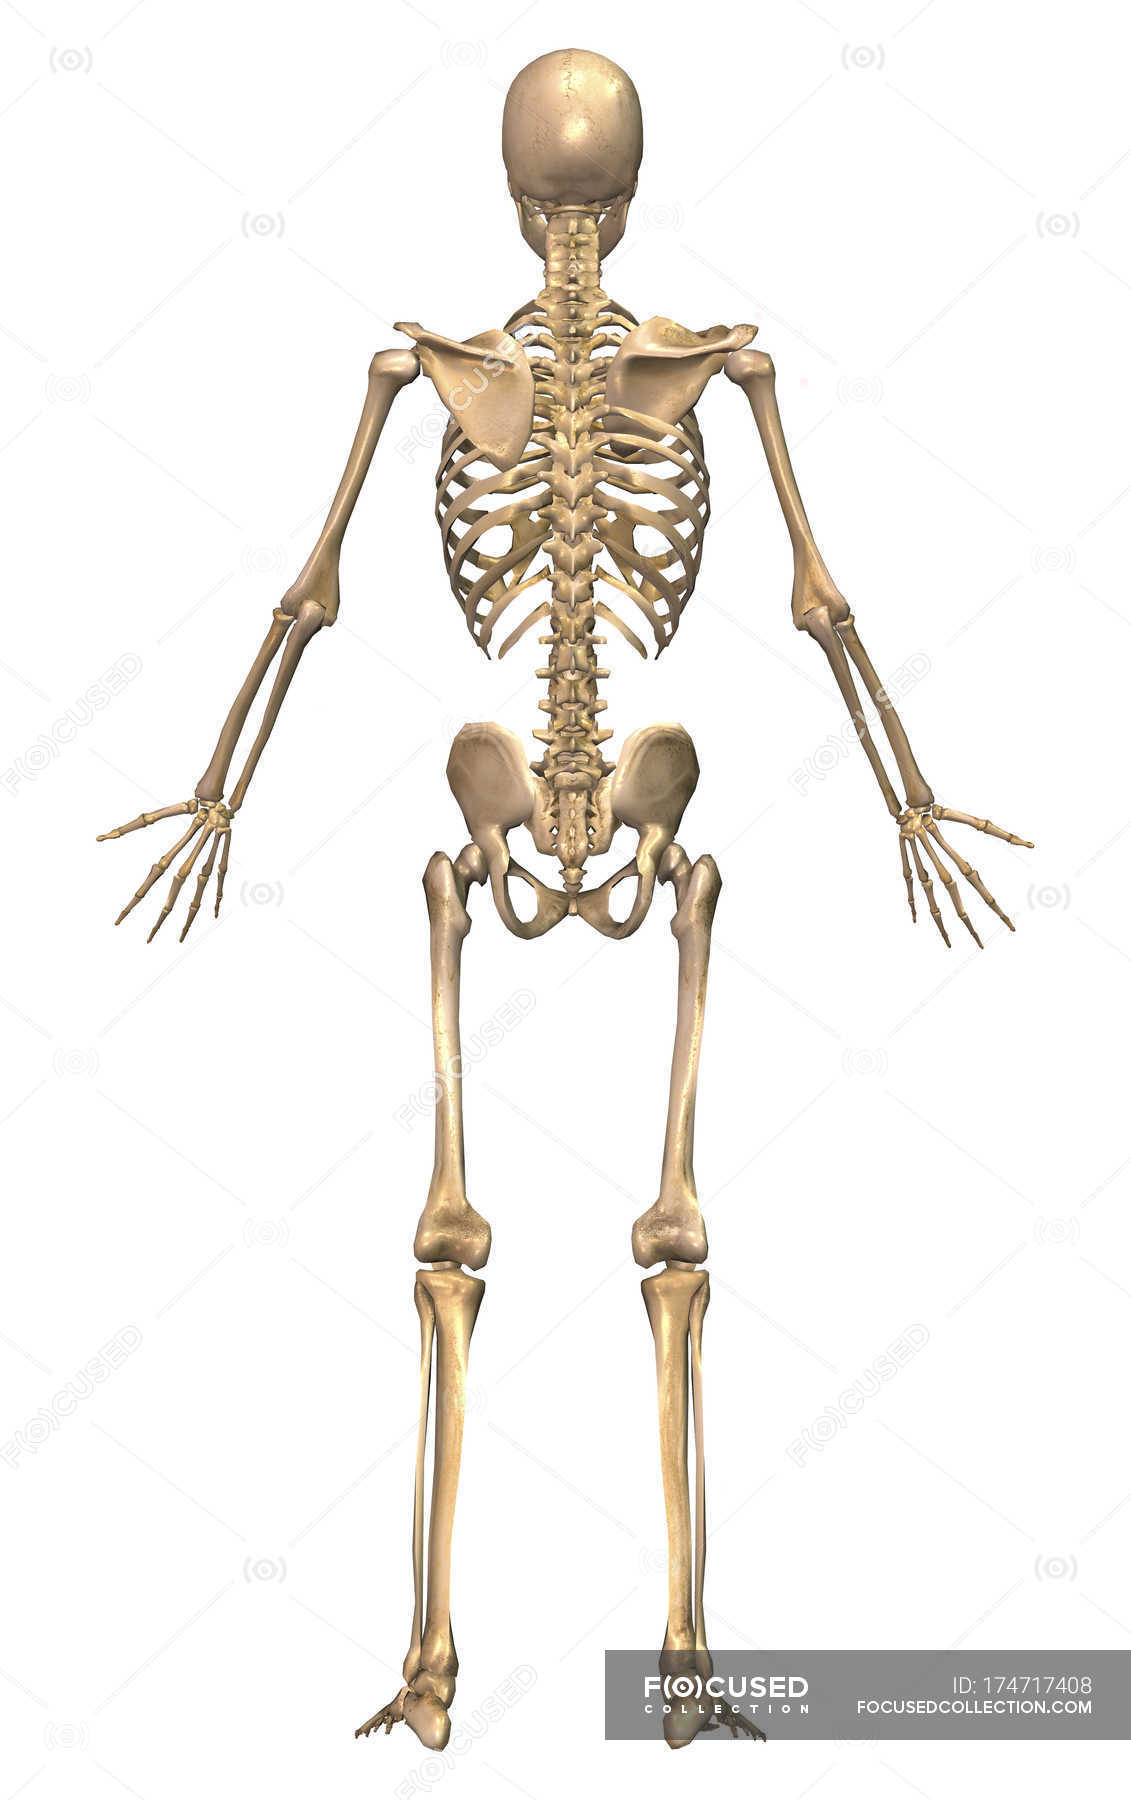 Back View Of Human Skeletal System Stock Photo 174717408